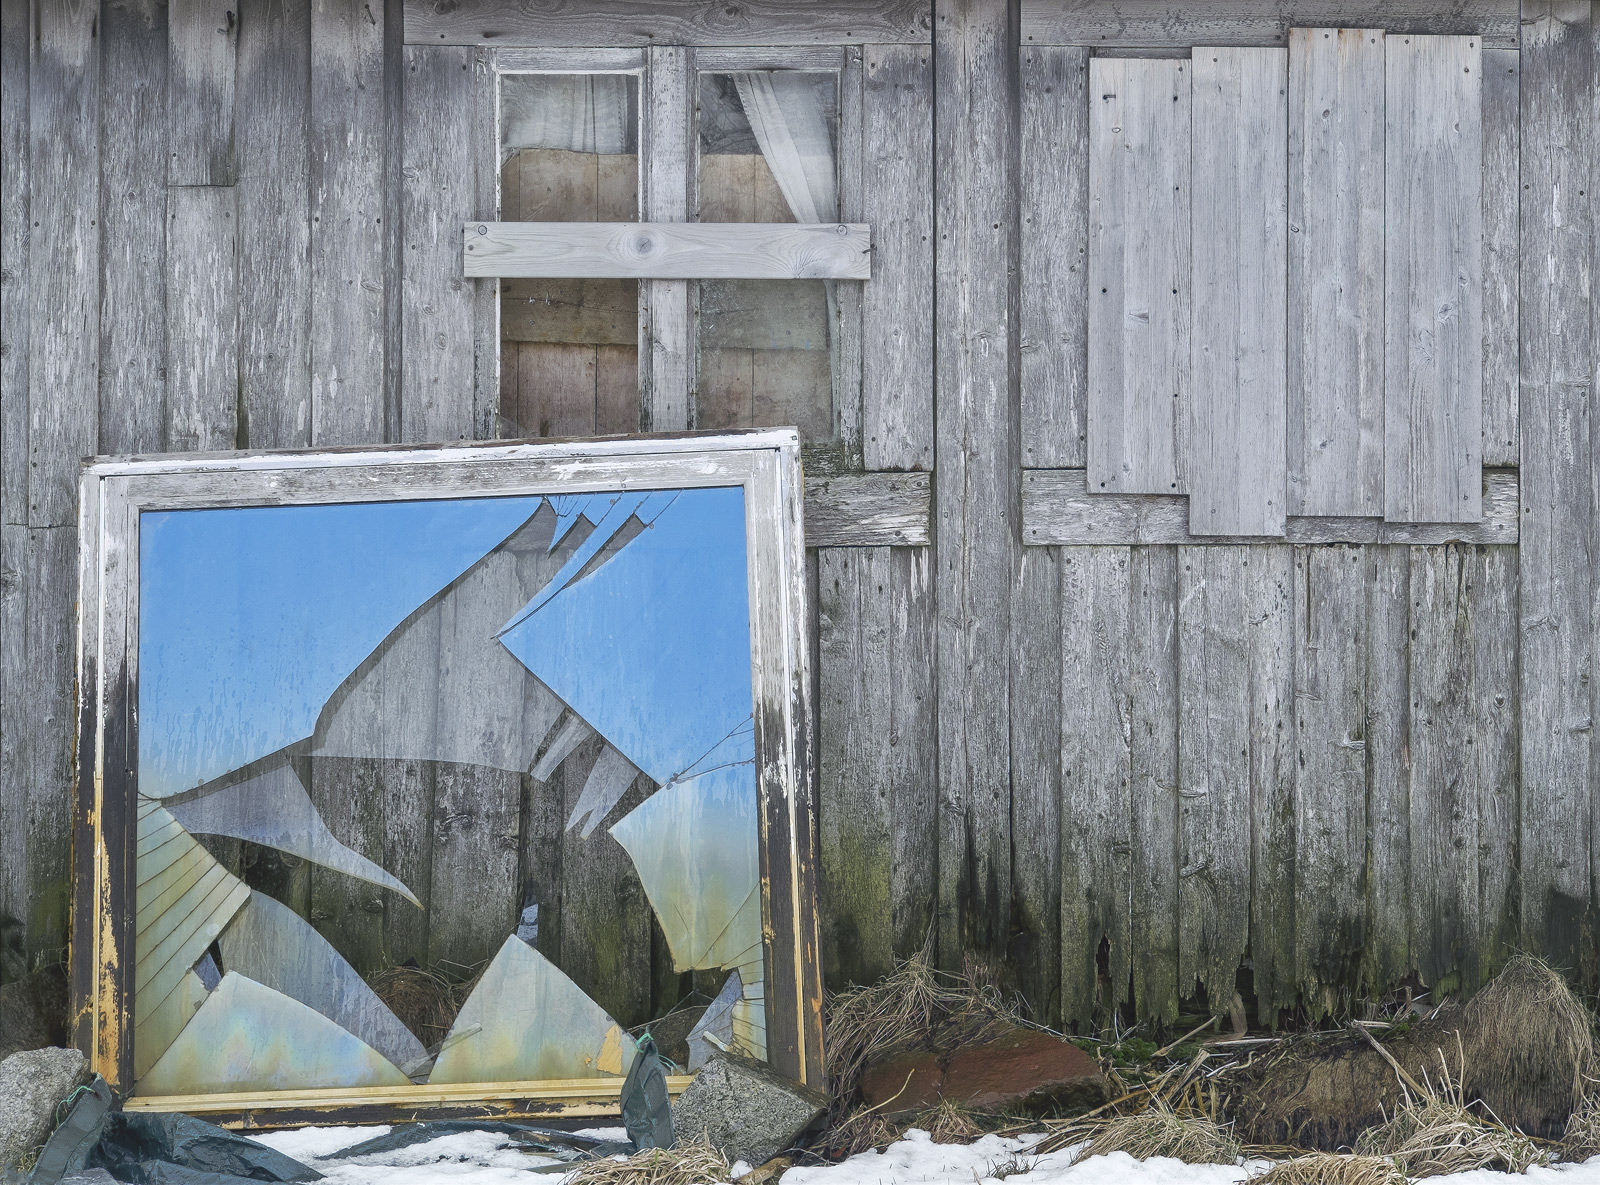 This broken window pane leaning up against the side of an old grey slatted ruined house resonated with me right from the very...